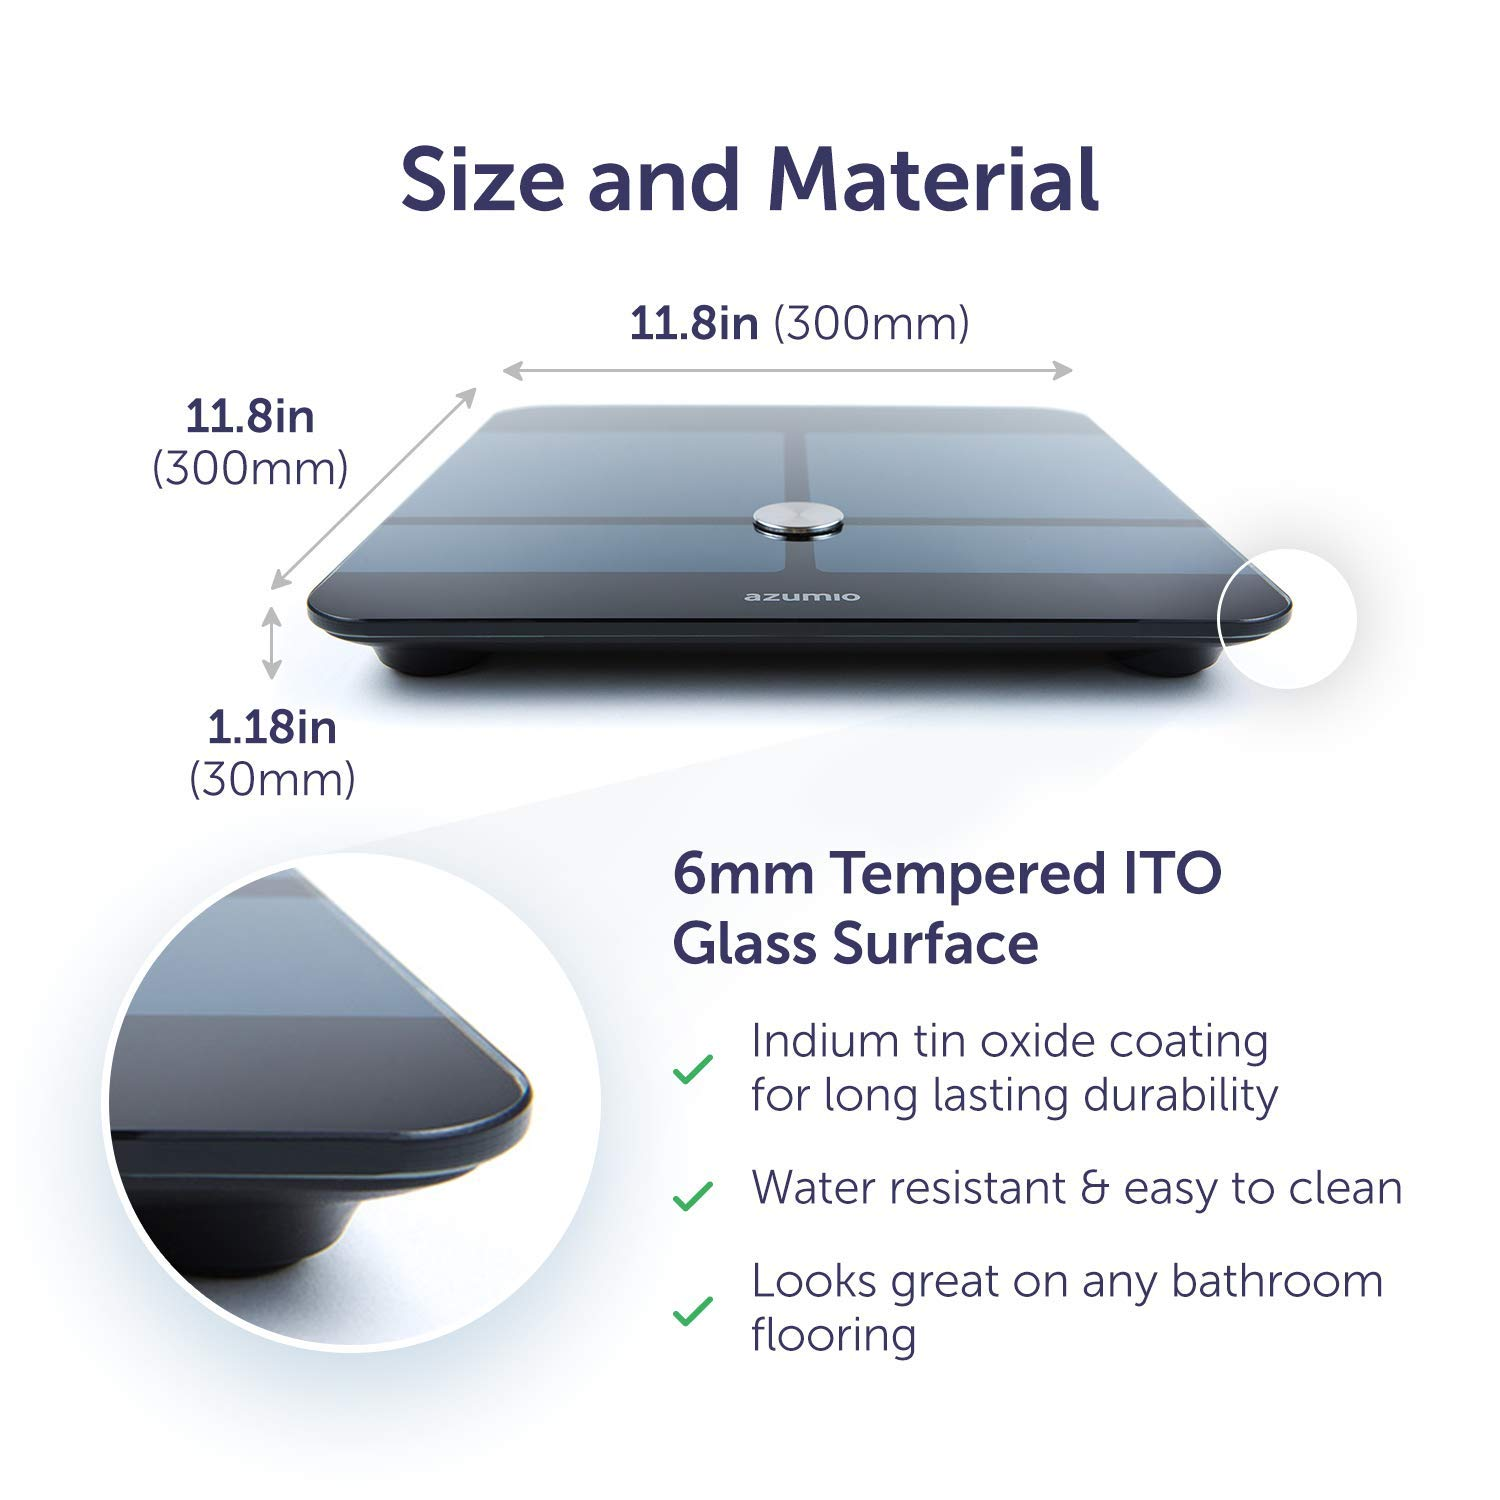 Azumio Bluetooth Digital Smart Scale for Body Weight | 6mm Tempered Glass LED Display Measures Body Fat, Visceral, BMI, BMR, Muscle Mass, Bone Mass Water Weight in KG or LB | iOS & Android Compatible by Azumio (Image #2)